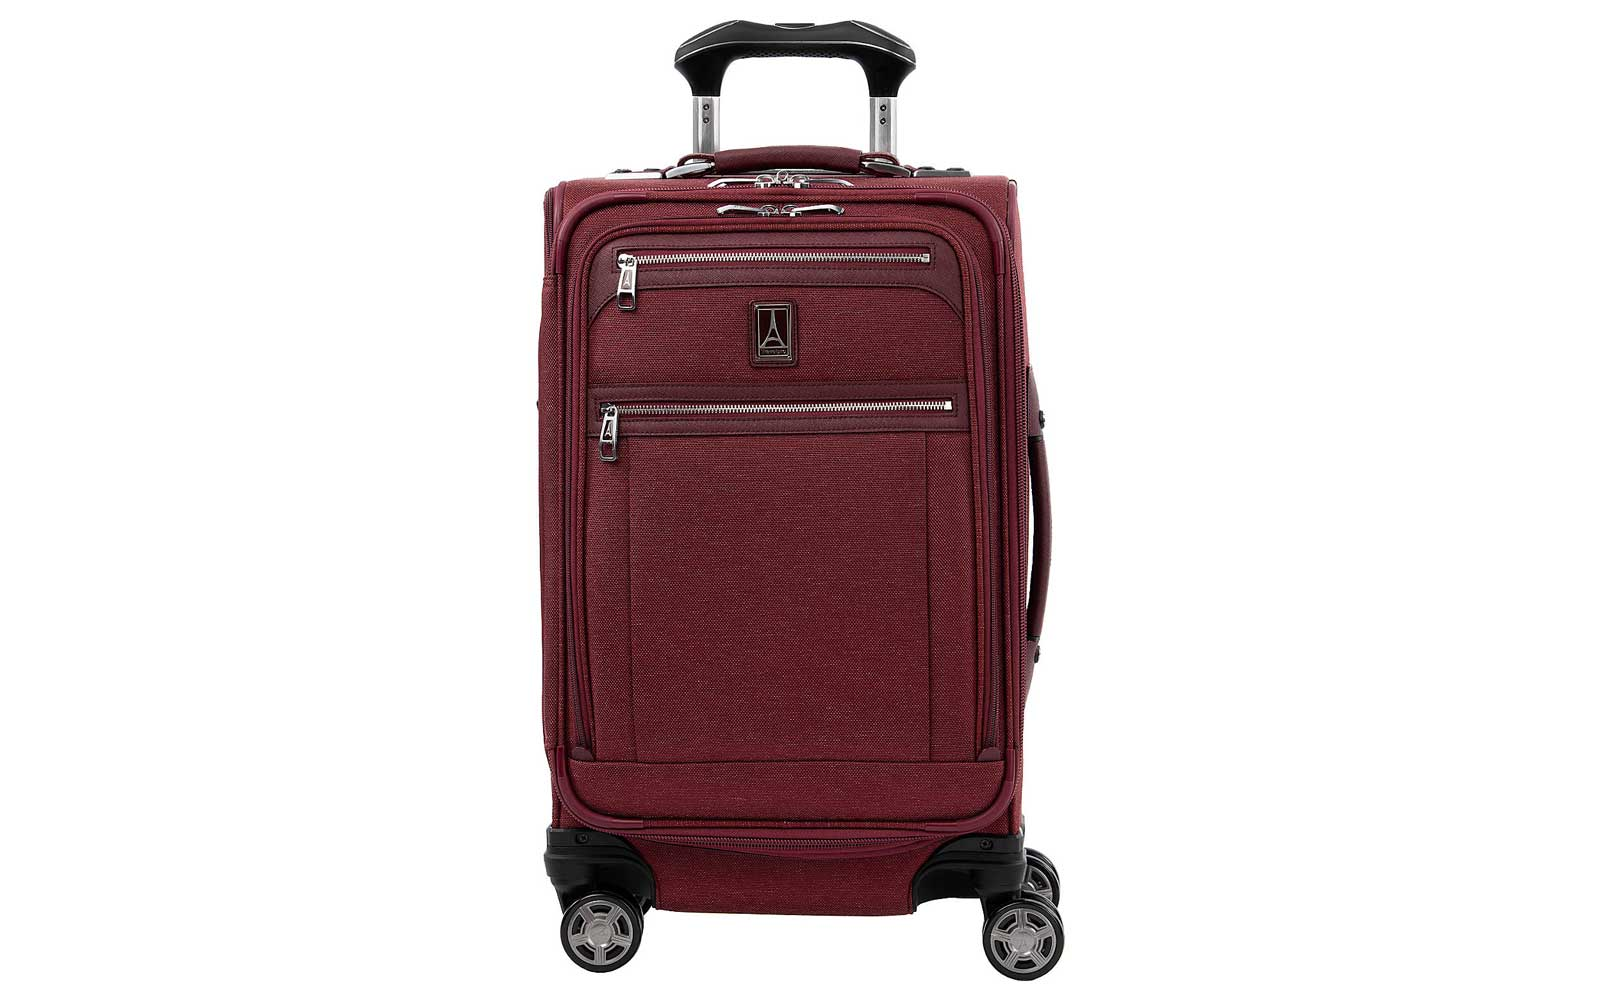 Red Travelpro Softside Carry-on Suitcase